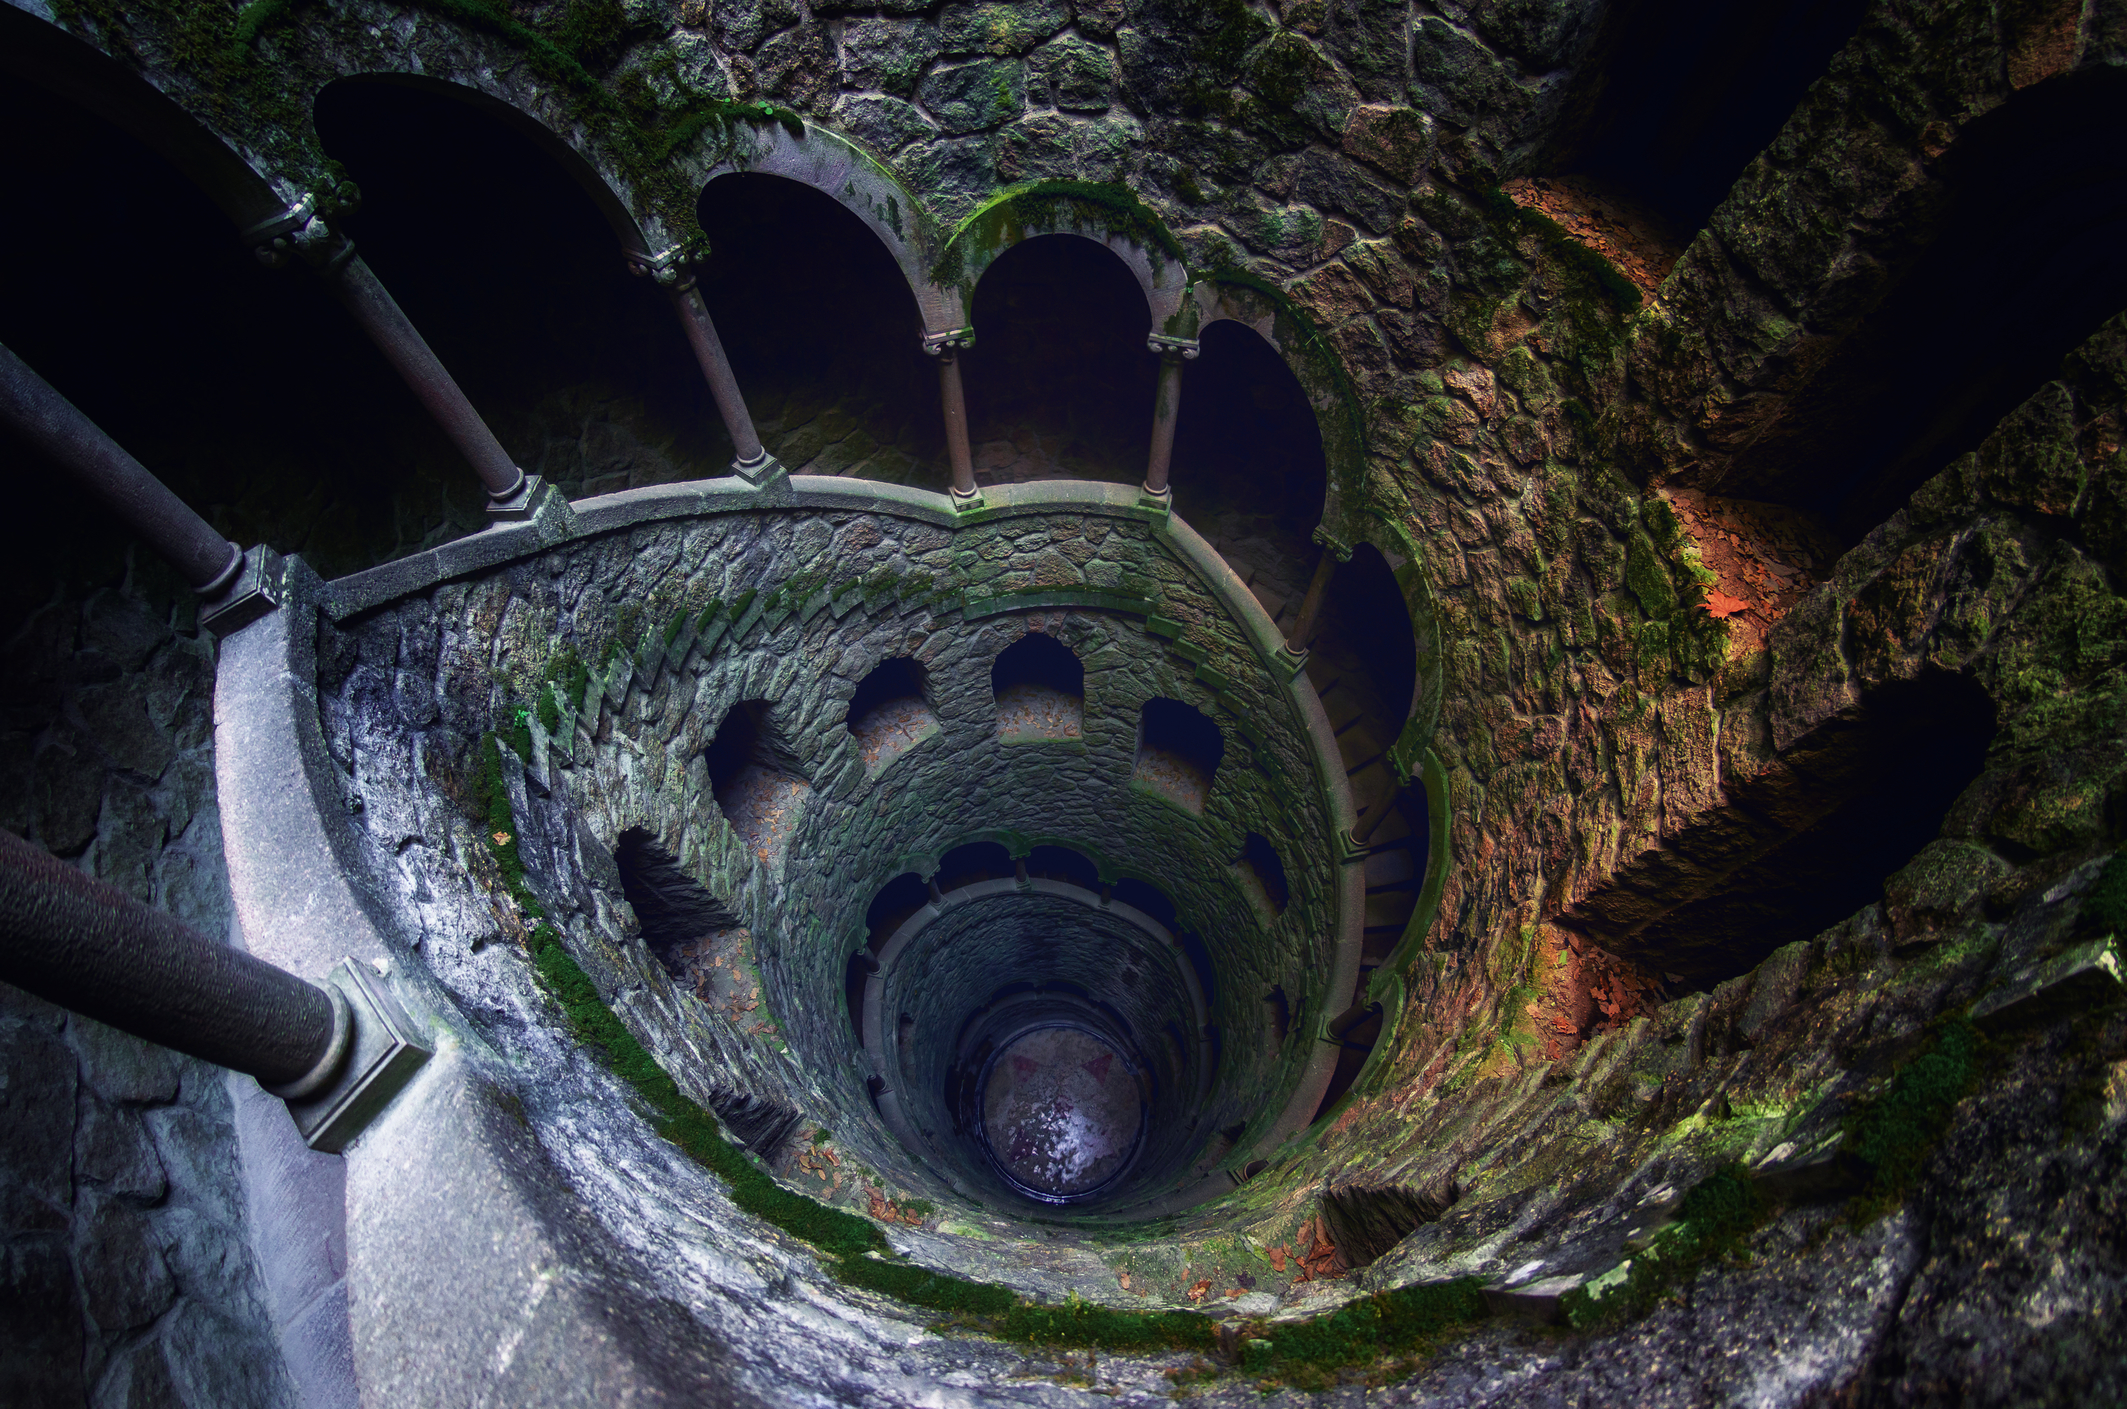 The famous initiation well of the Quinta da Regaleira, masonic spiral staircase of the romantic age in Sintra, Portugal, on February 5, 2019